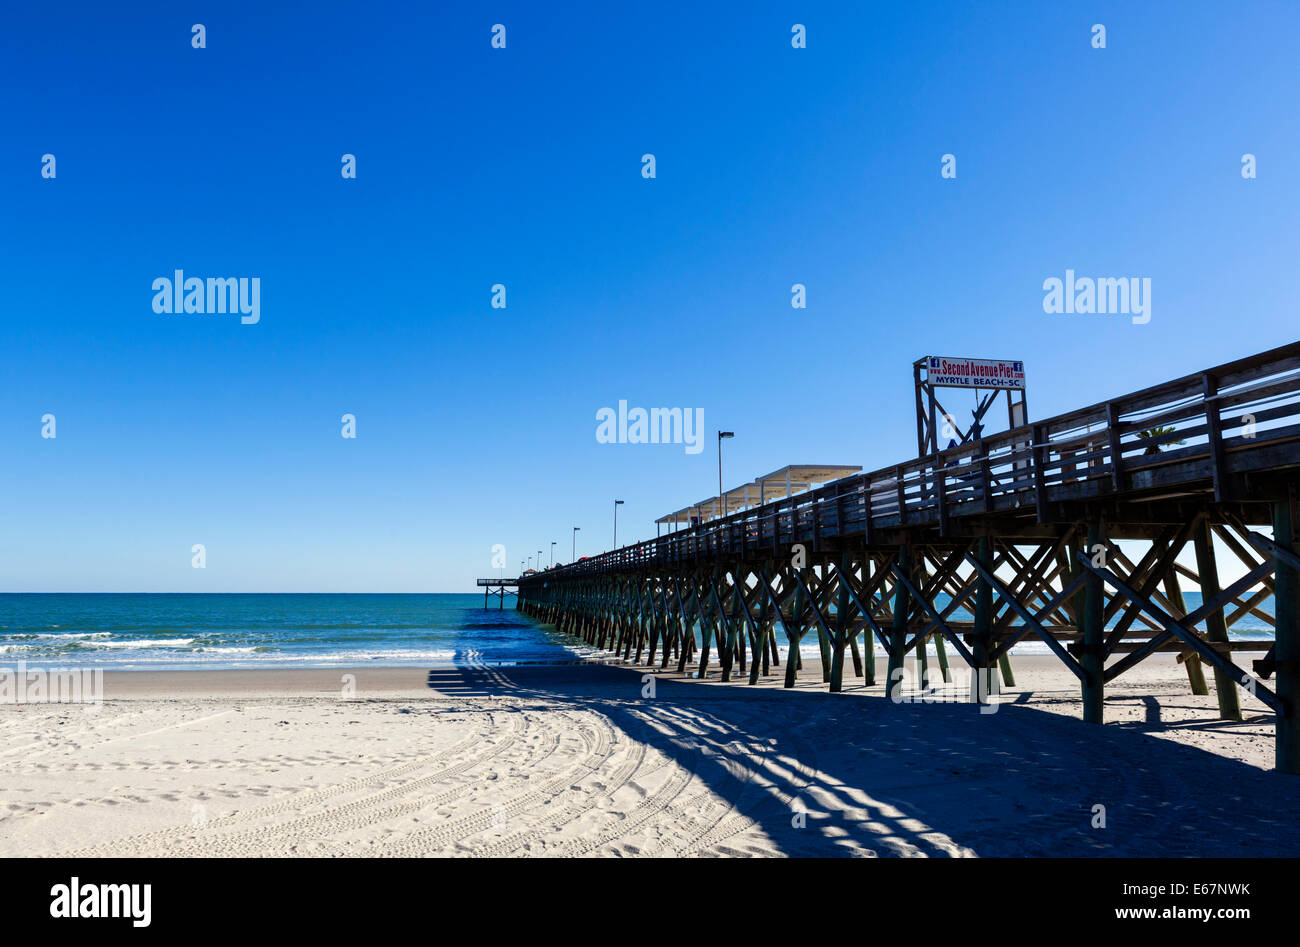 The 2nd Avenue Pier on a quiet out of season fall day, Myrtle Beach, South Carolina, USA - Stock Image